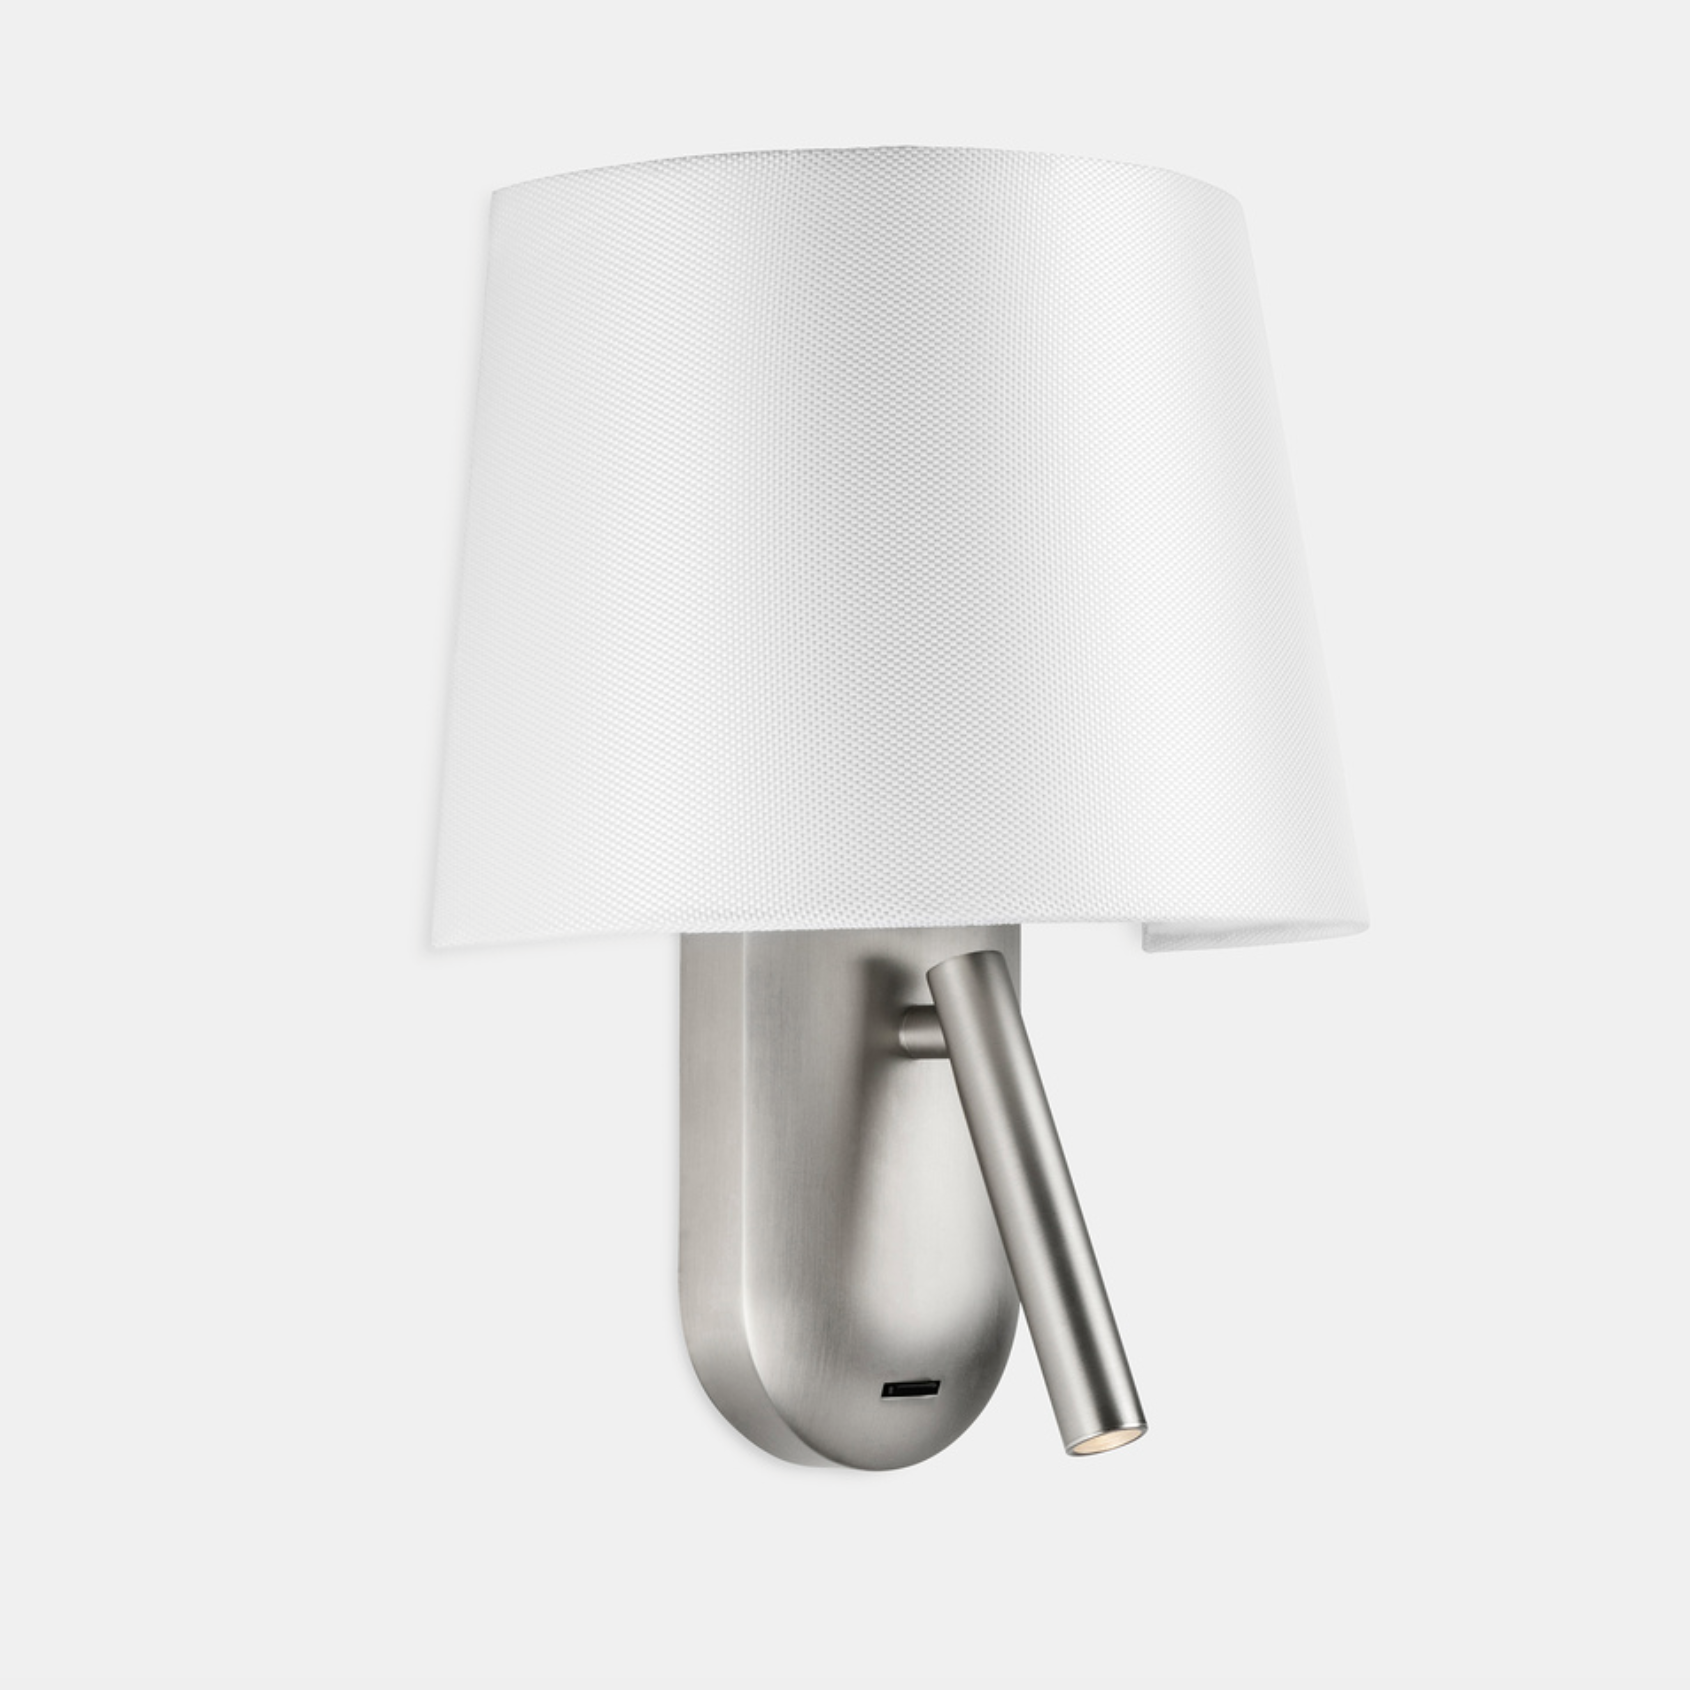 SCR Satin Nickel & White Diffuser Wall Light - ID 10750